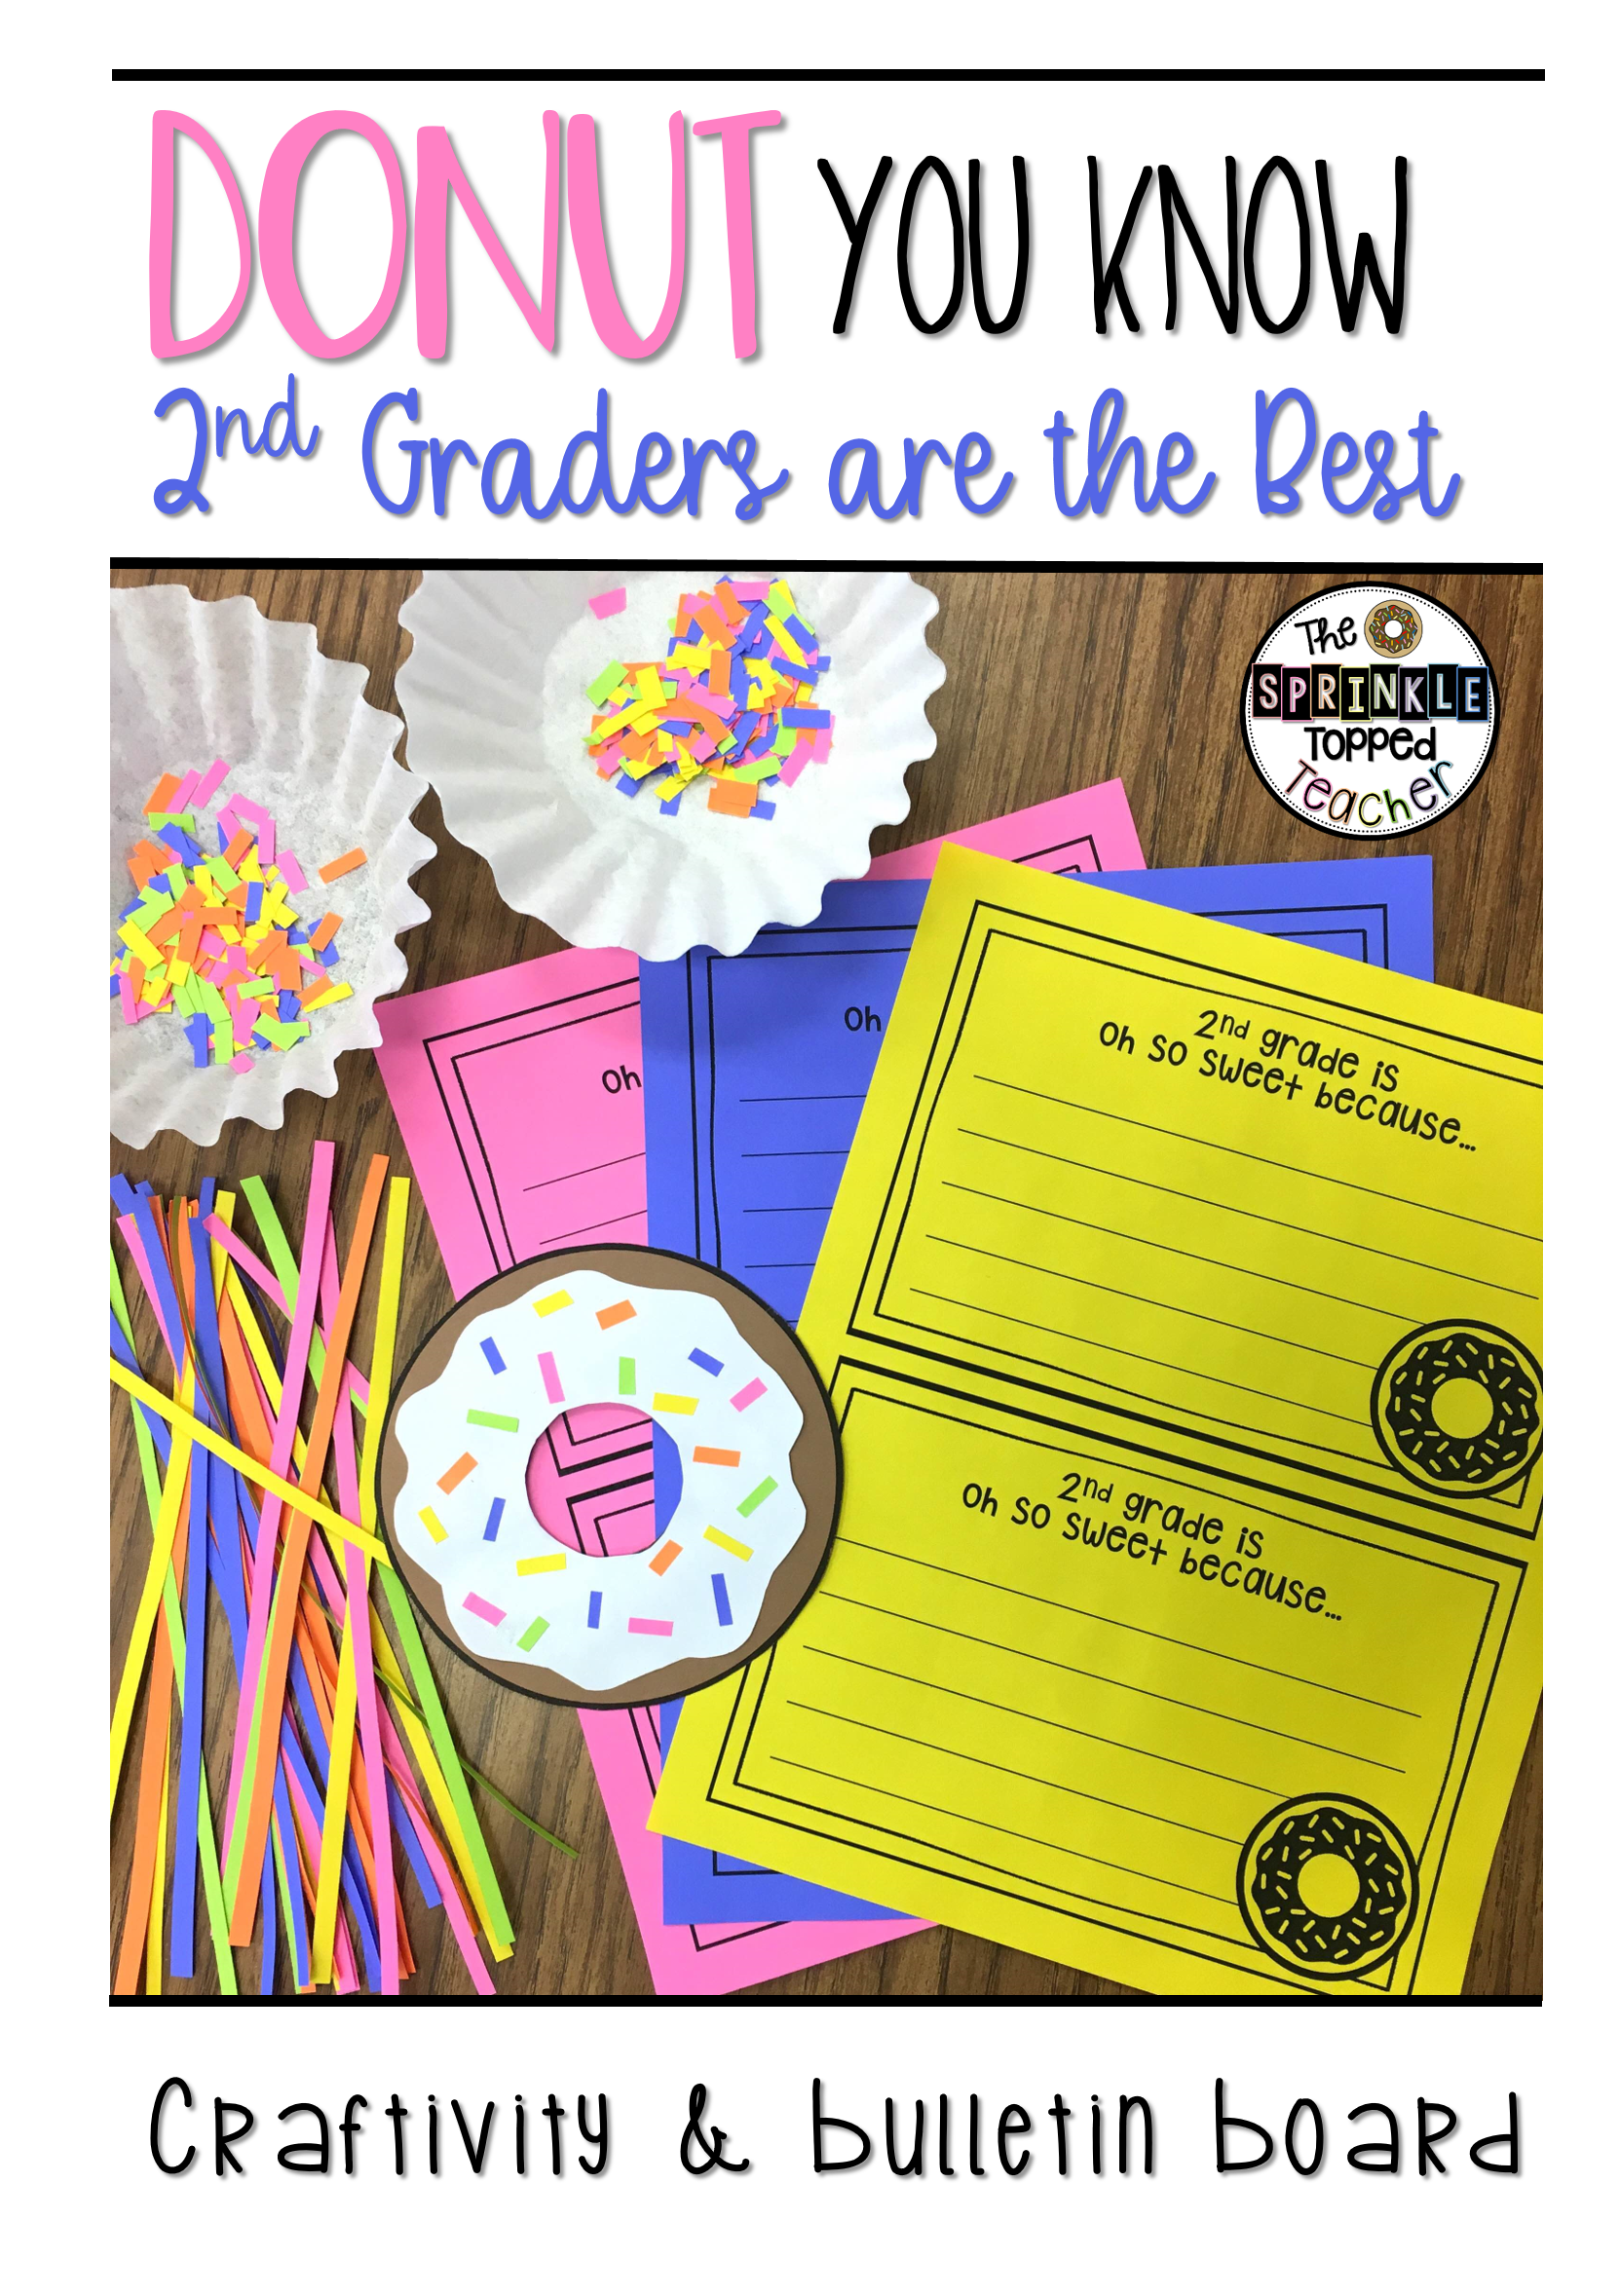 donut you know    grade is the best craftivity with bulletin board set